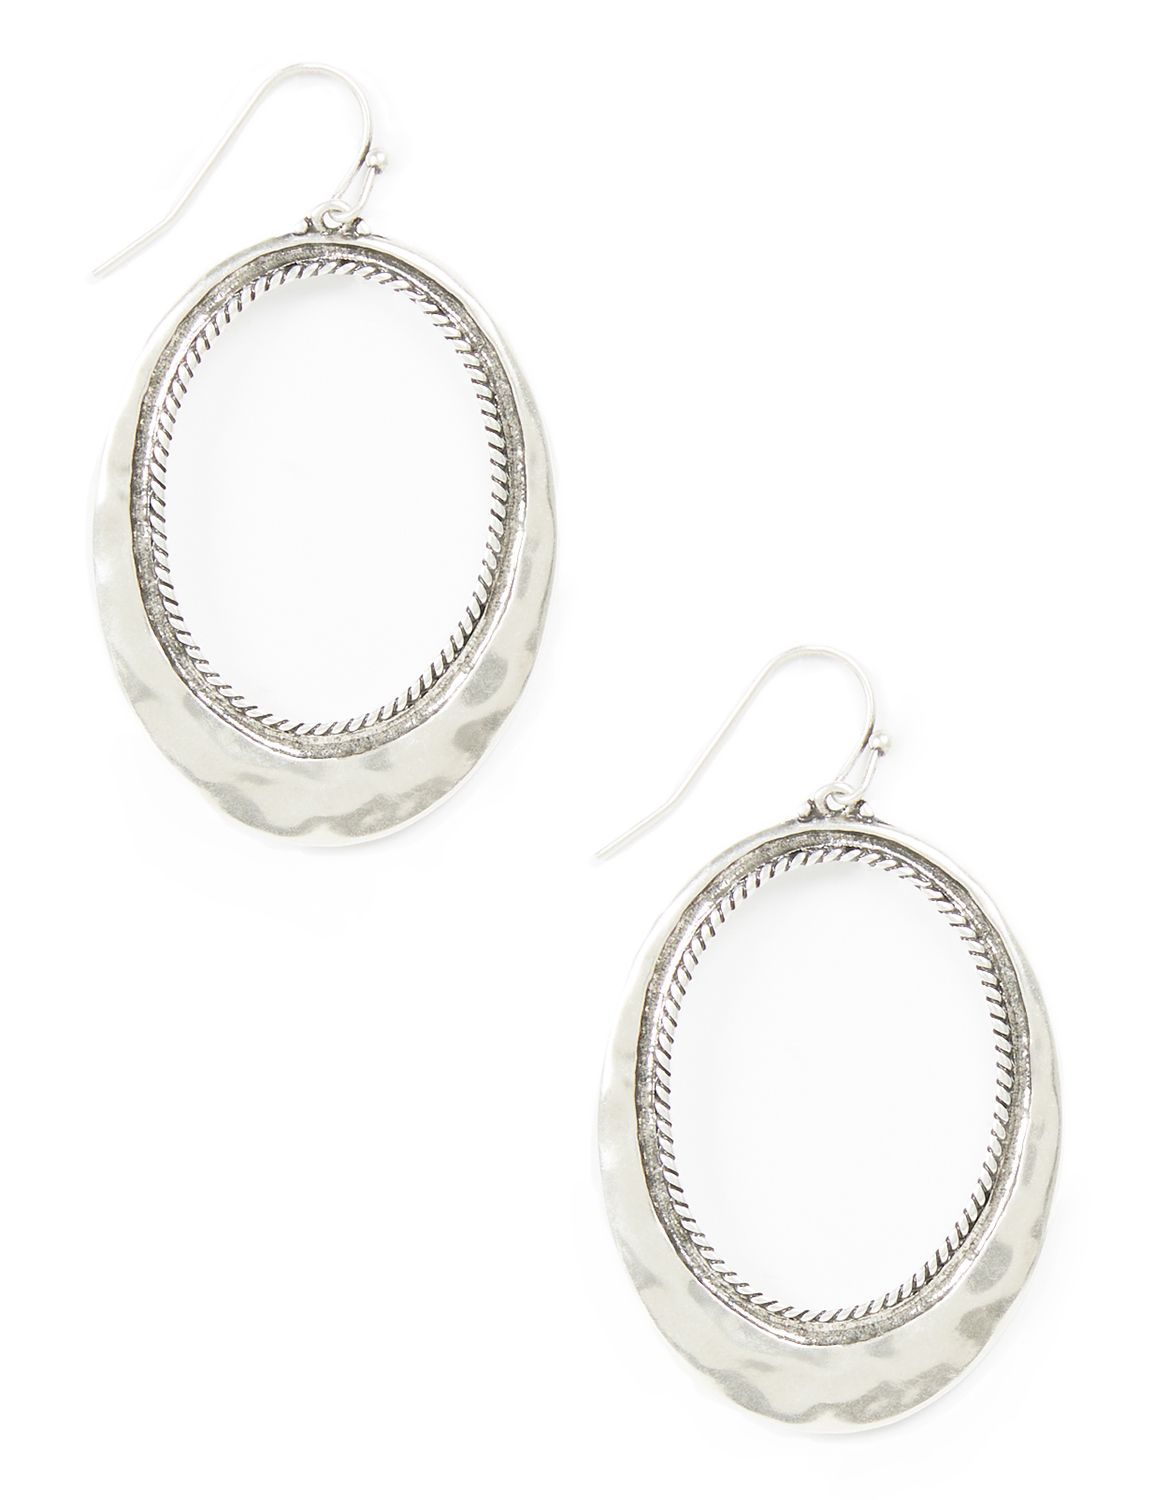 Lush Sunlight Earrings CB Drop hmmrd oval ring PE 8/9O MP-300097190